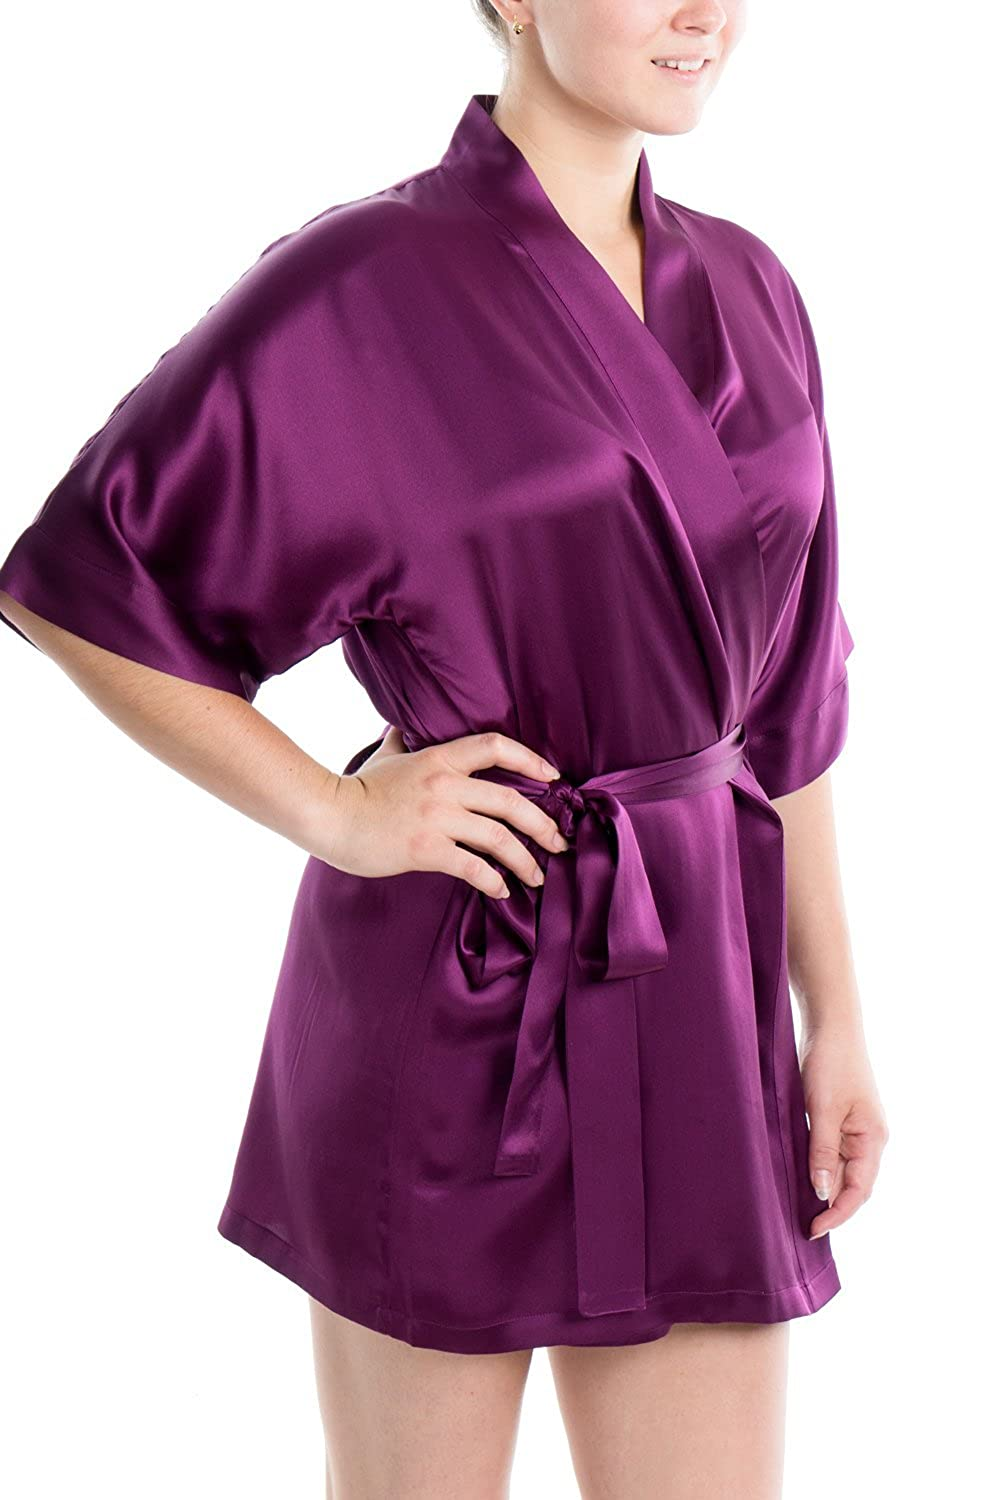 Ruby Wine OSCAR ROSSA Women's Luxury Silk Sleepwear 100% Silk Sexy Short Robe Kimono